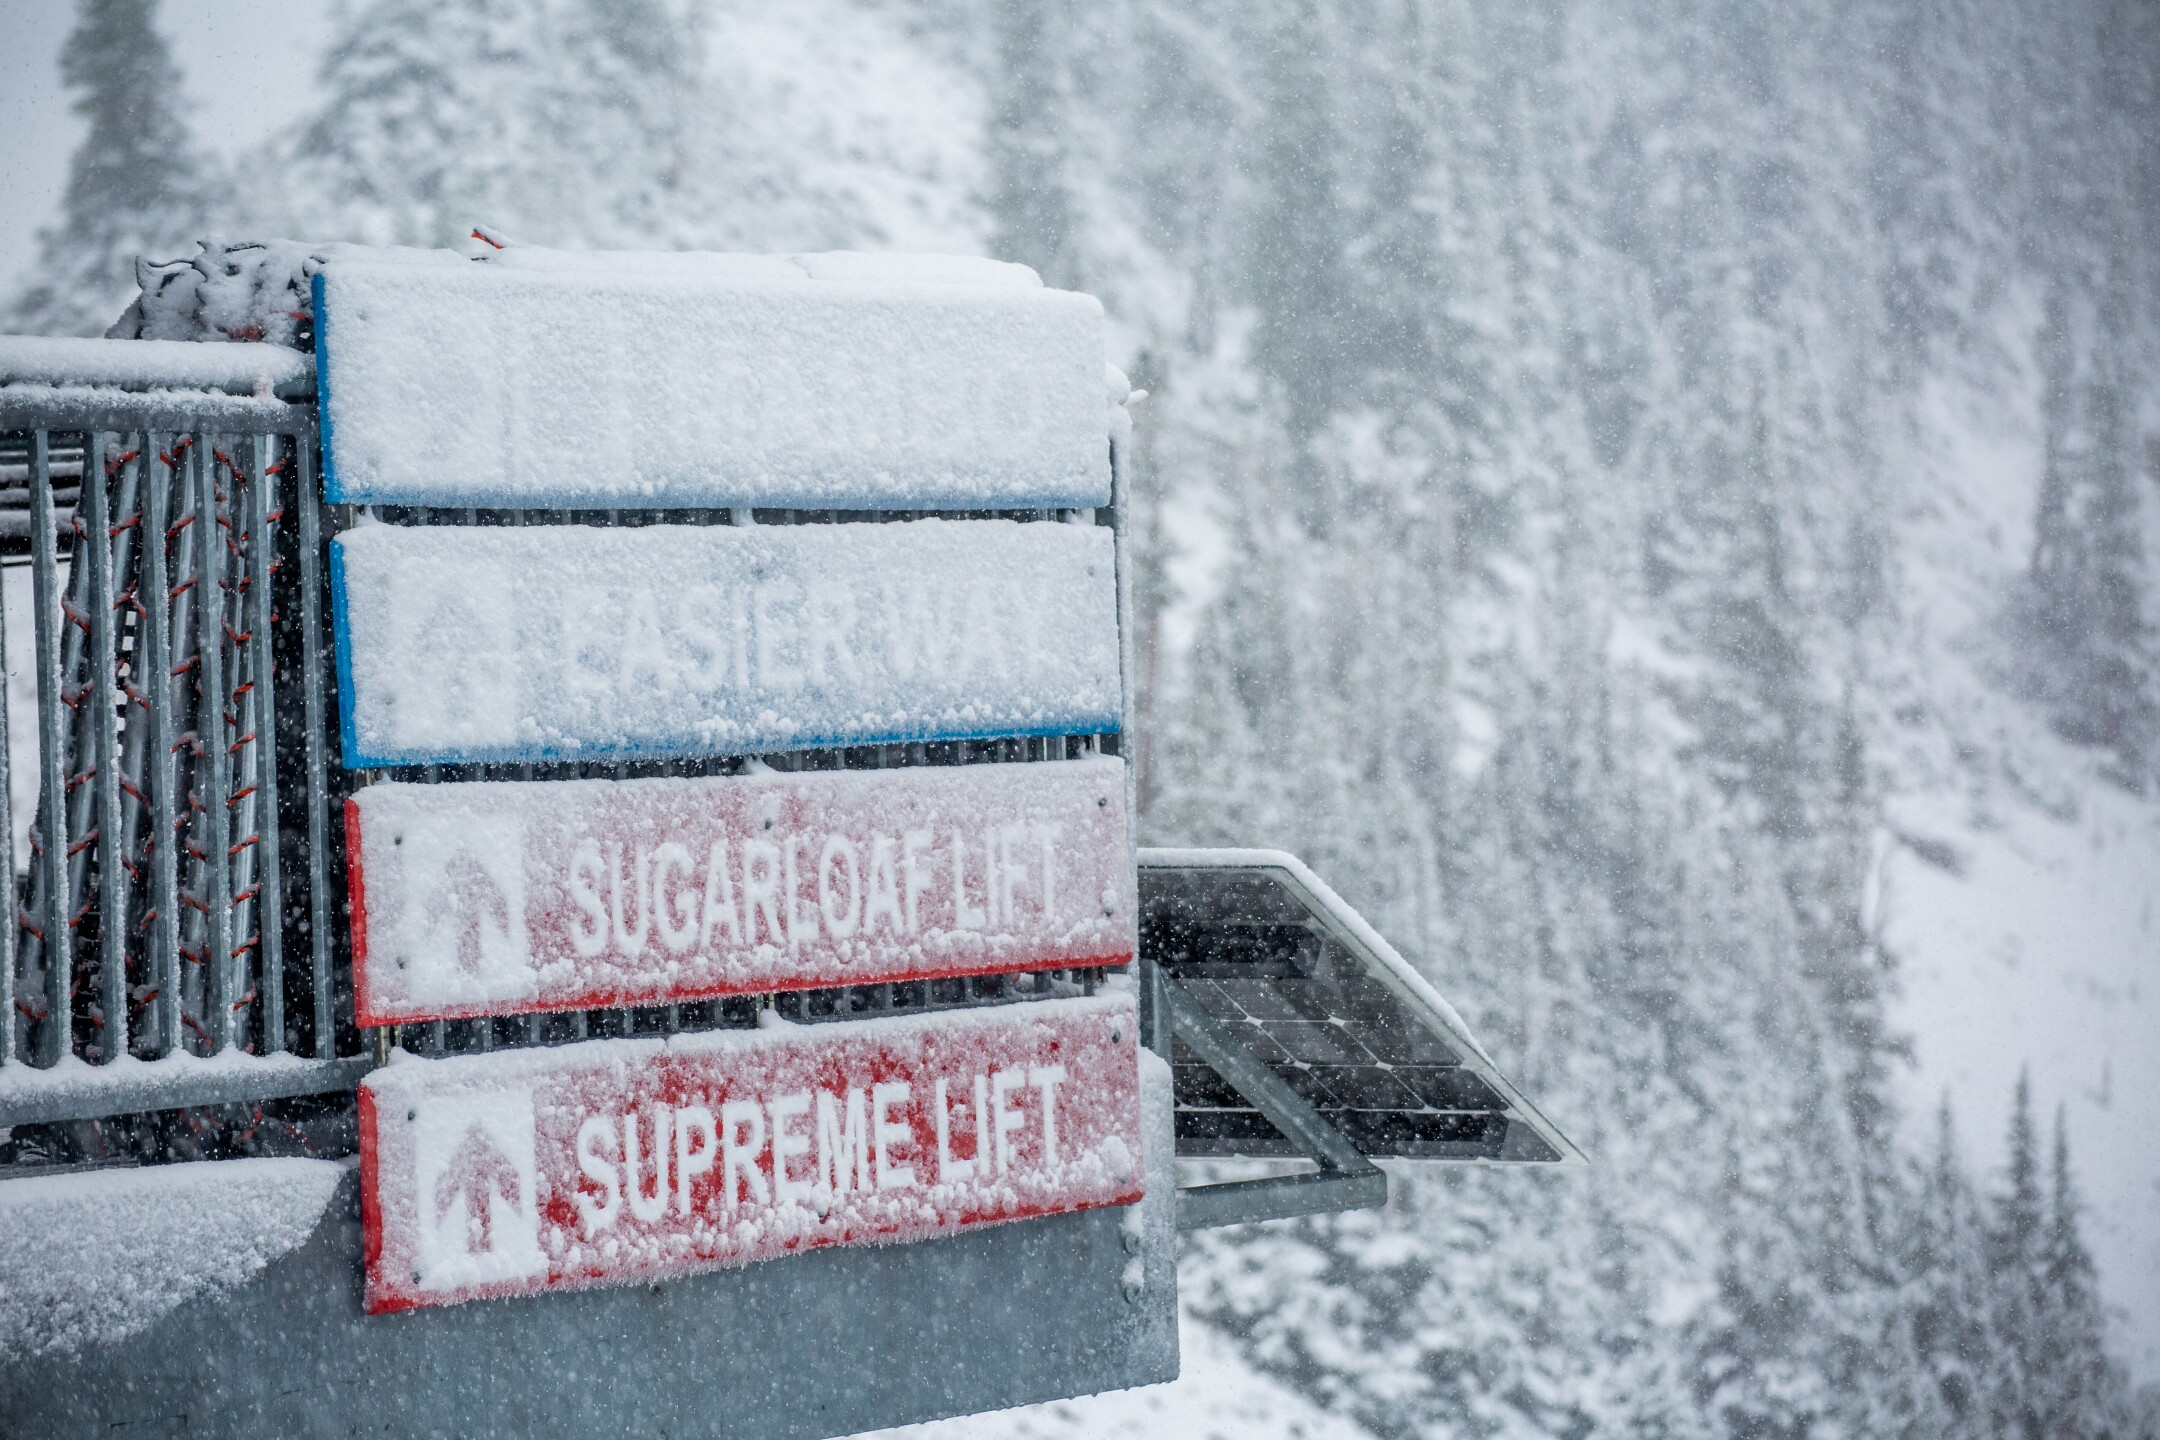 Photos: Utah ski resorts get their first dusting of snow; hope for another banner year